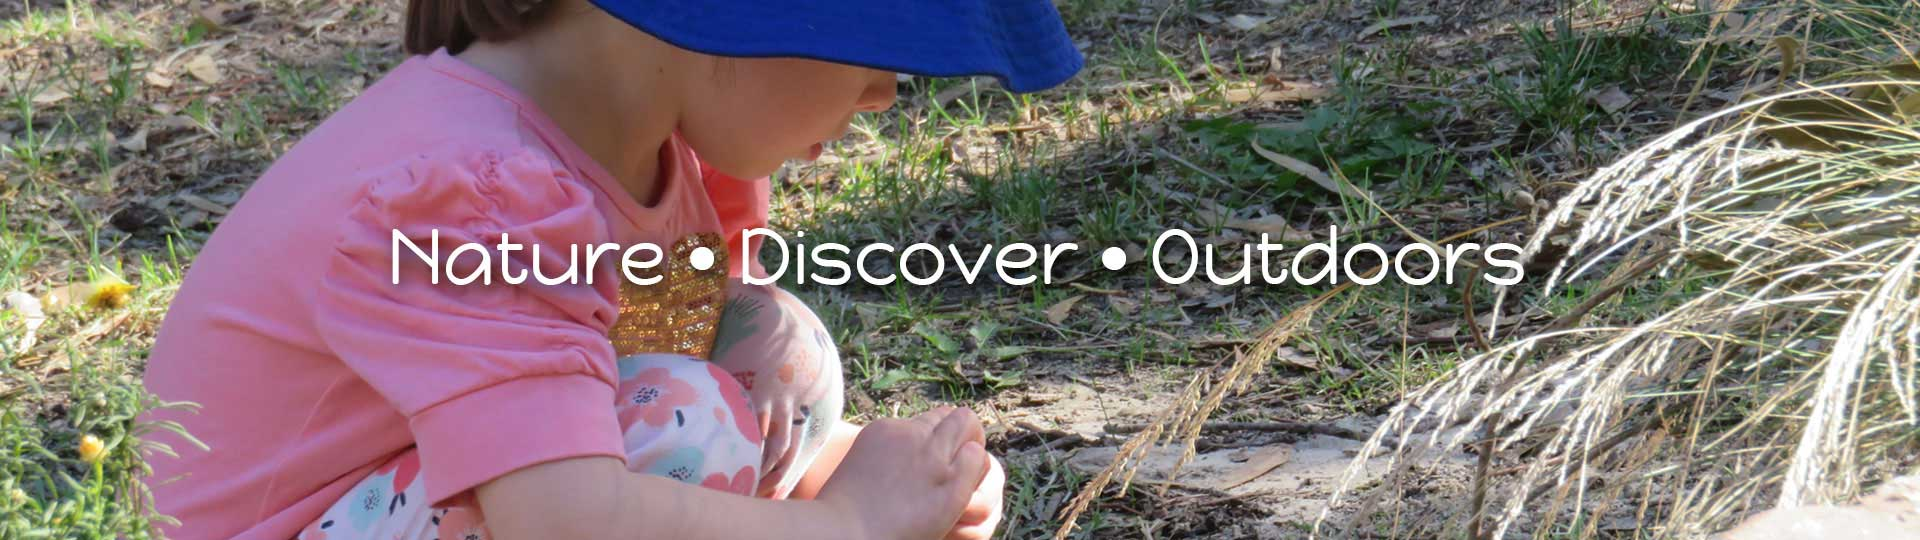 park orchards kinder discover